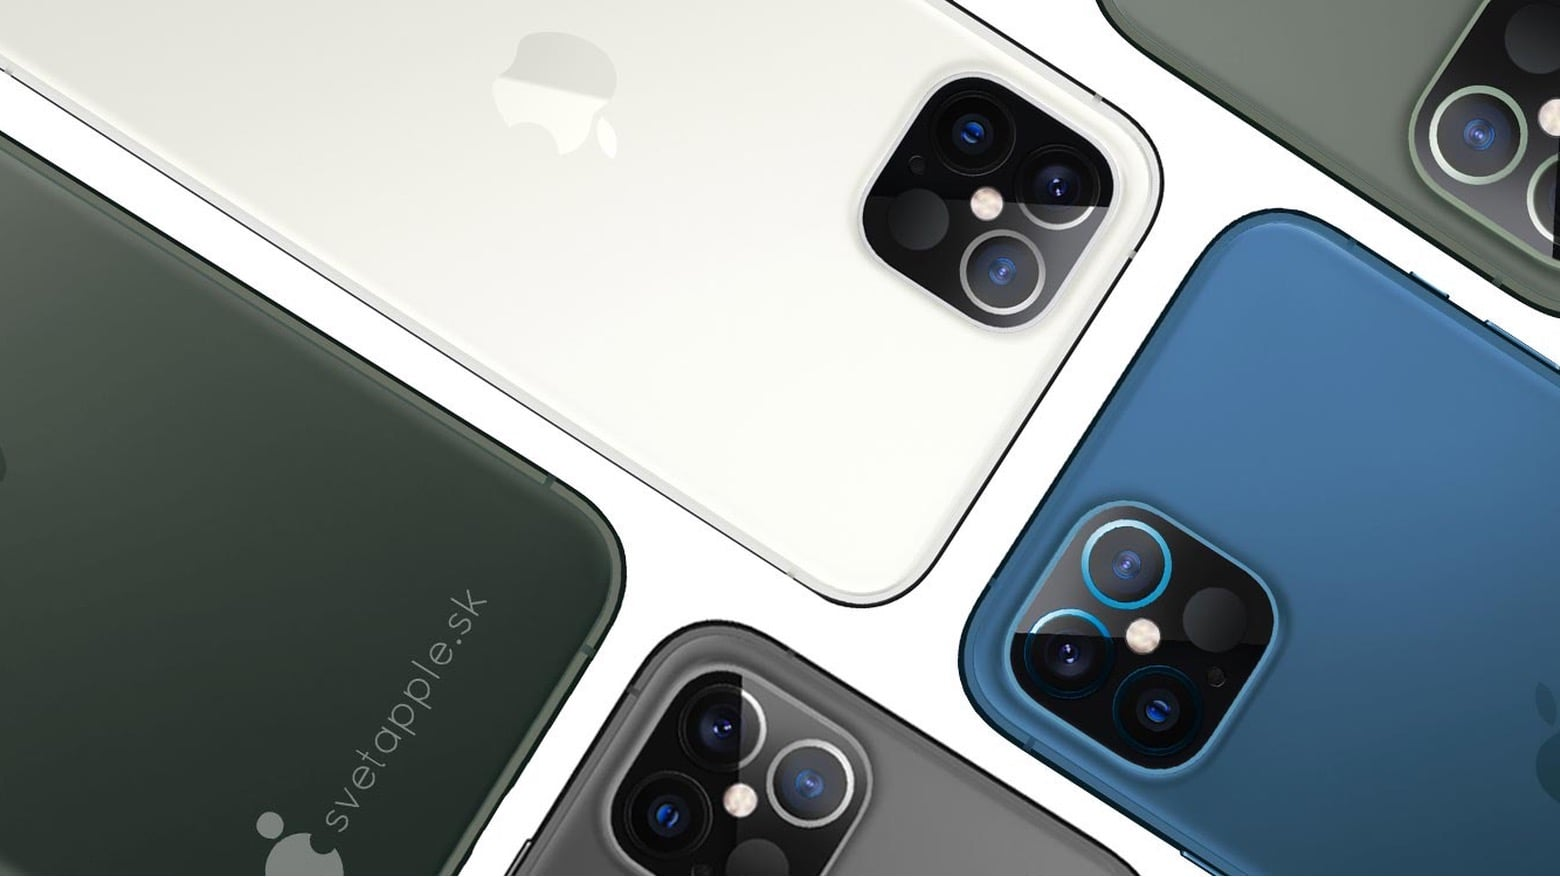 iPhone 12 with LiDAR scanner